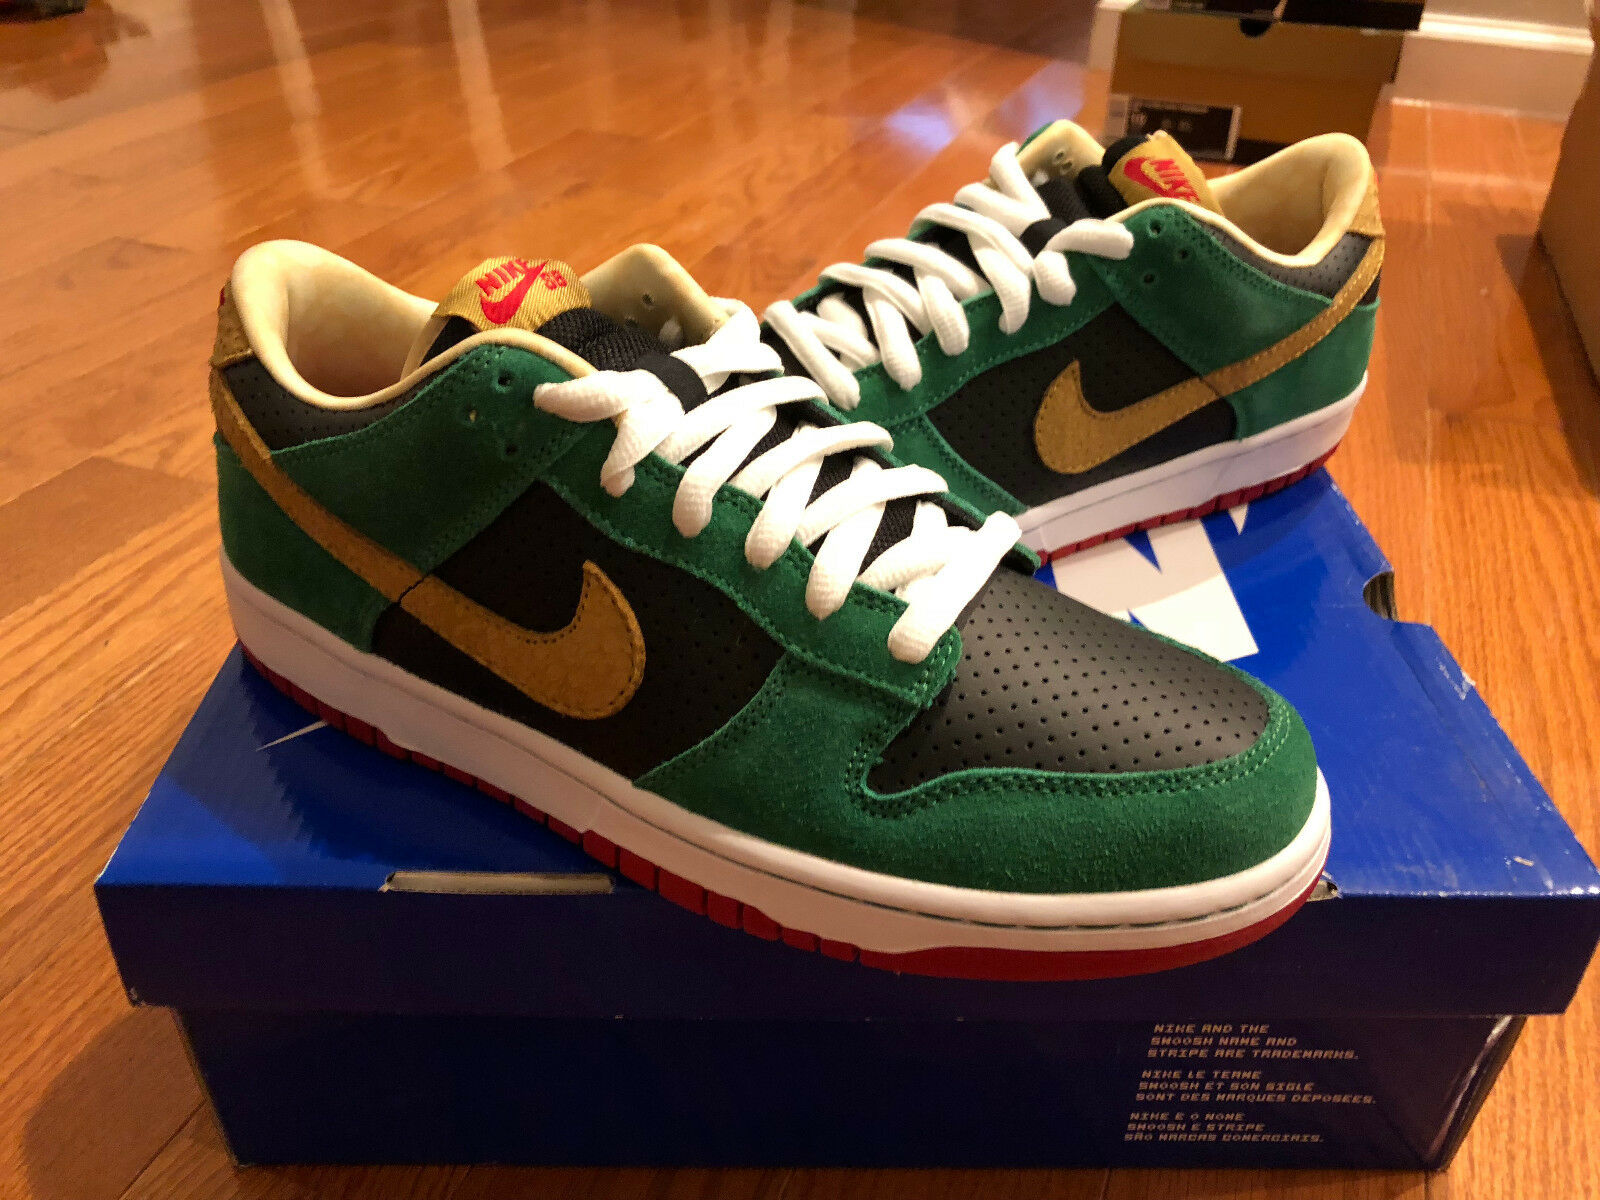 DS NIKE Dunk Low Premium SB  Miller High Life  Marvin the Martian (313170 008)